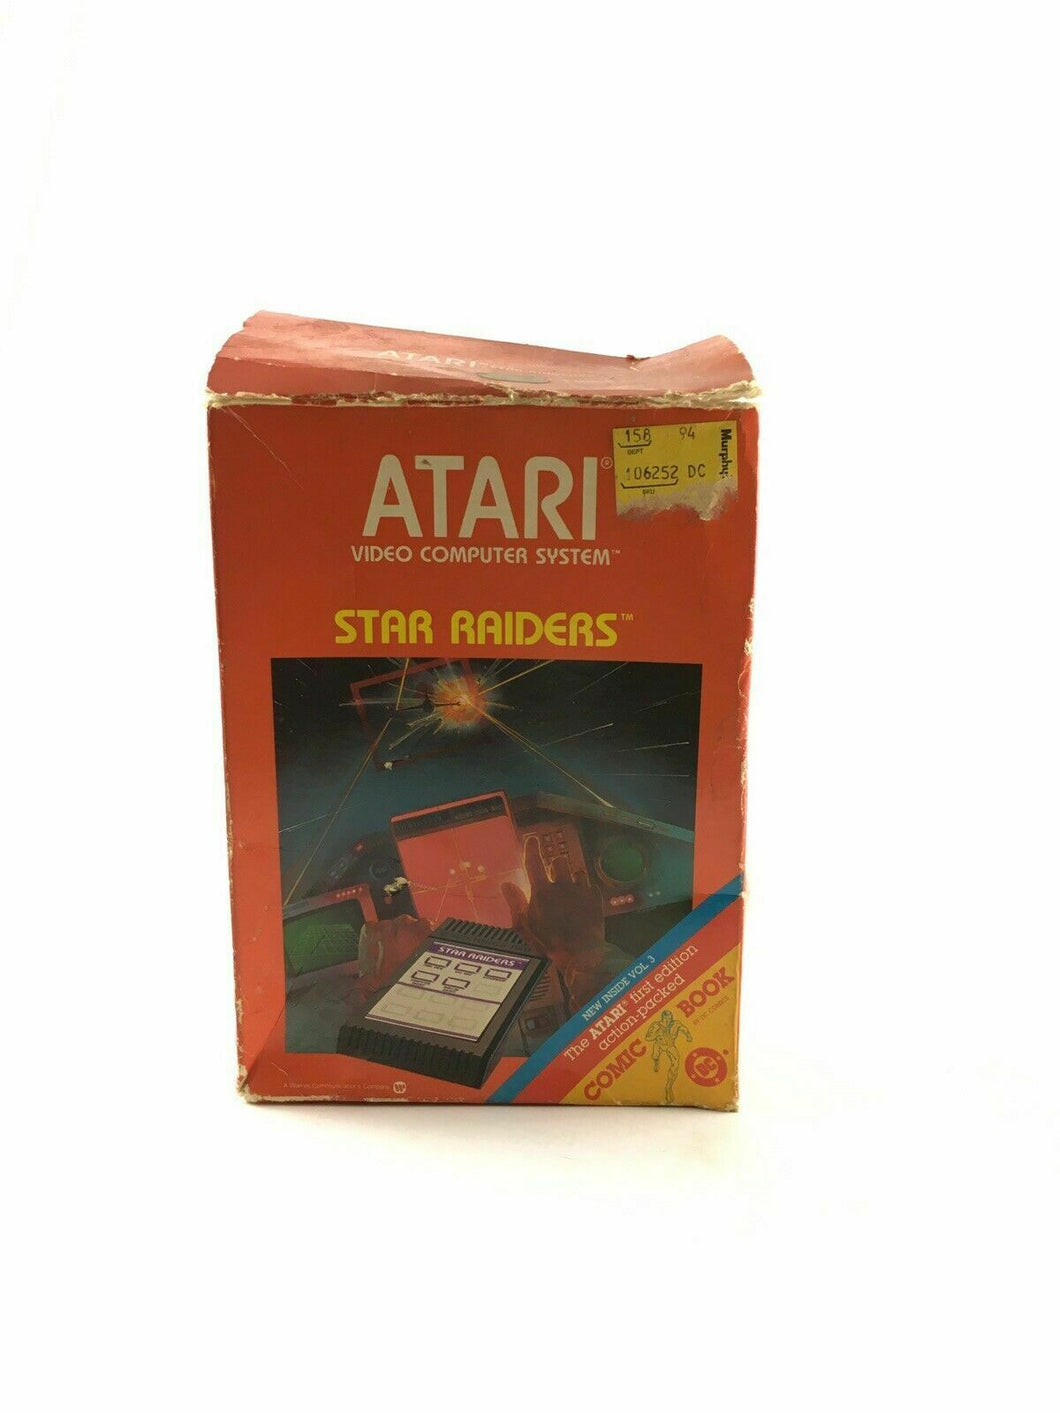 Star Raiders CX2660-1 | w/Atari Video Touch Pad 4677